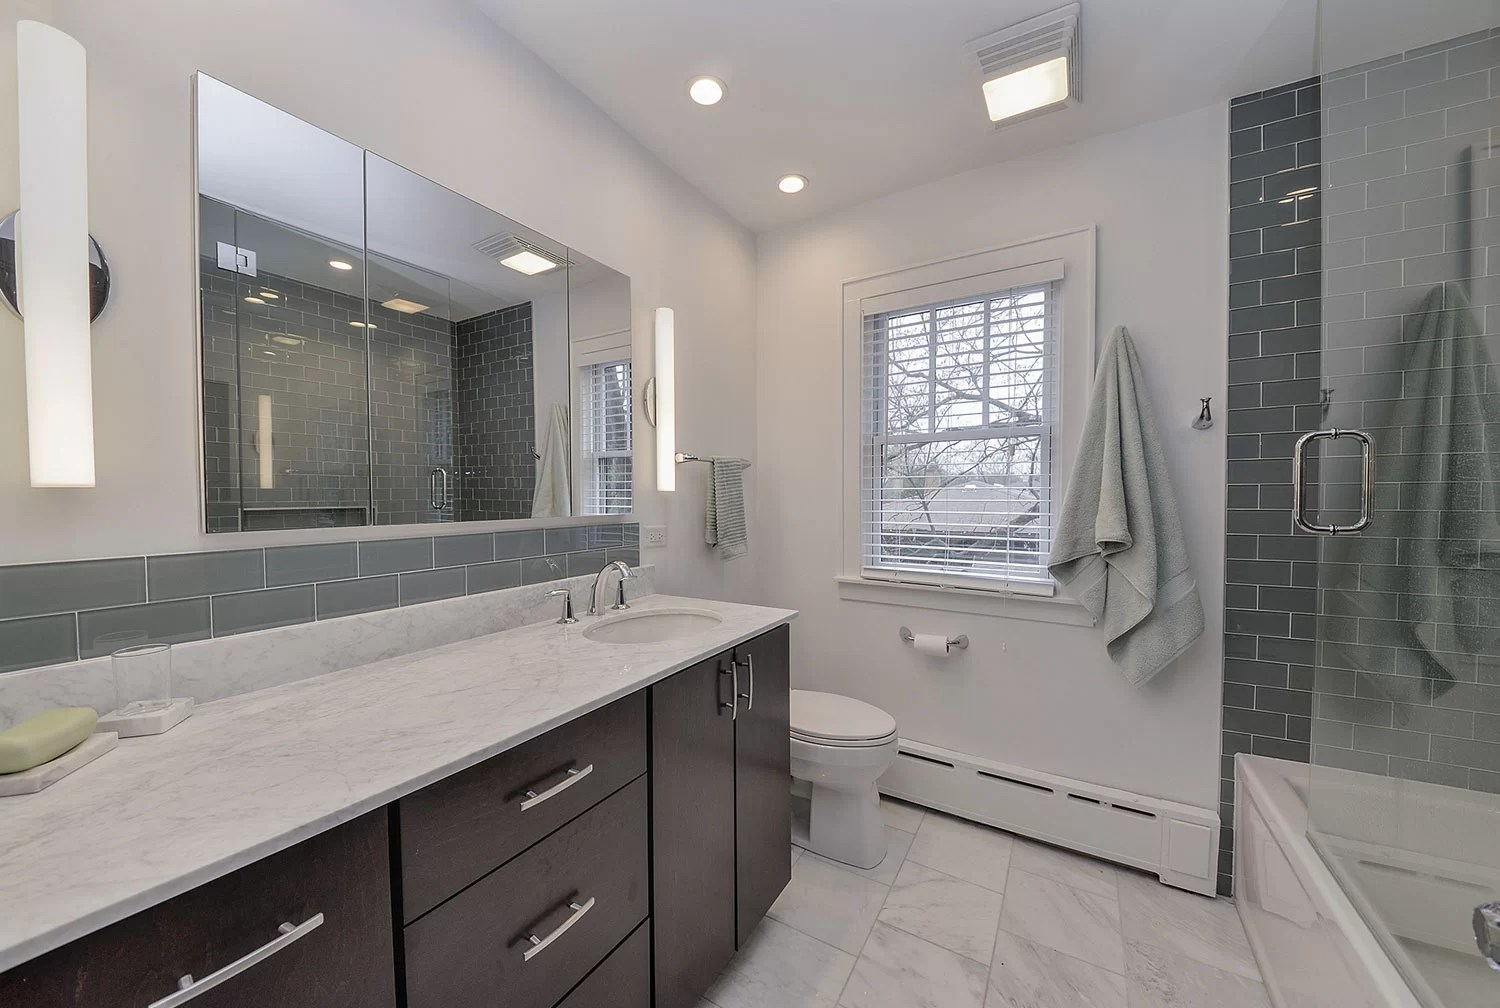 Cindy's Master Bathroom Remodel Pictures | Home Remodeling ... on Master Bathroom Remodel Ideas  id=74457